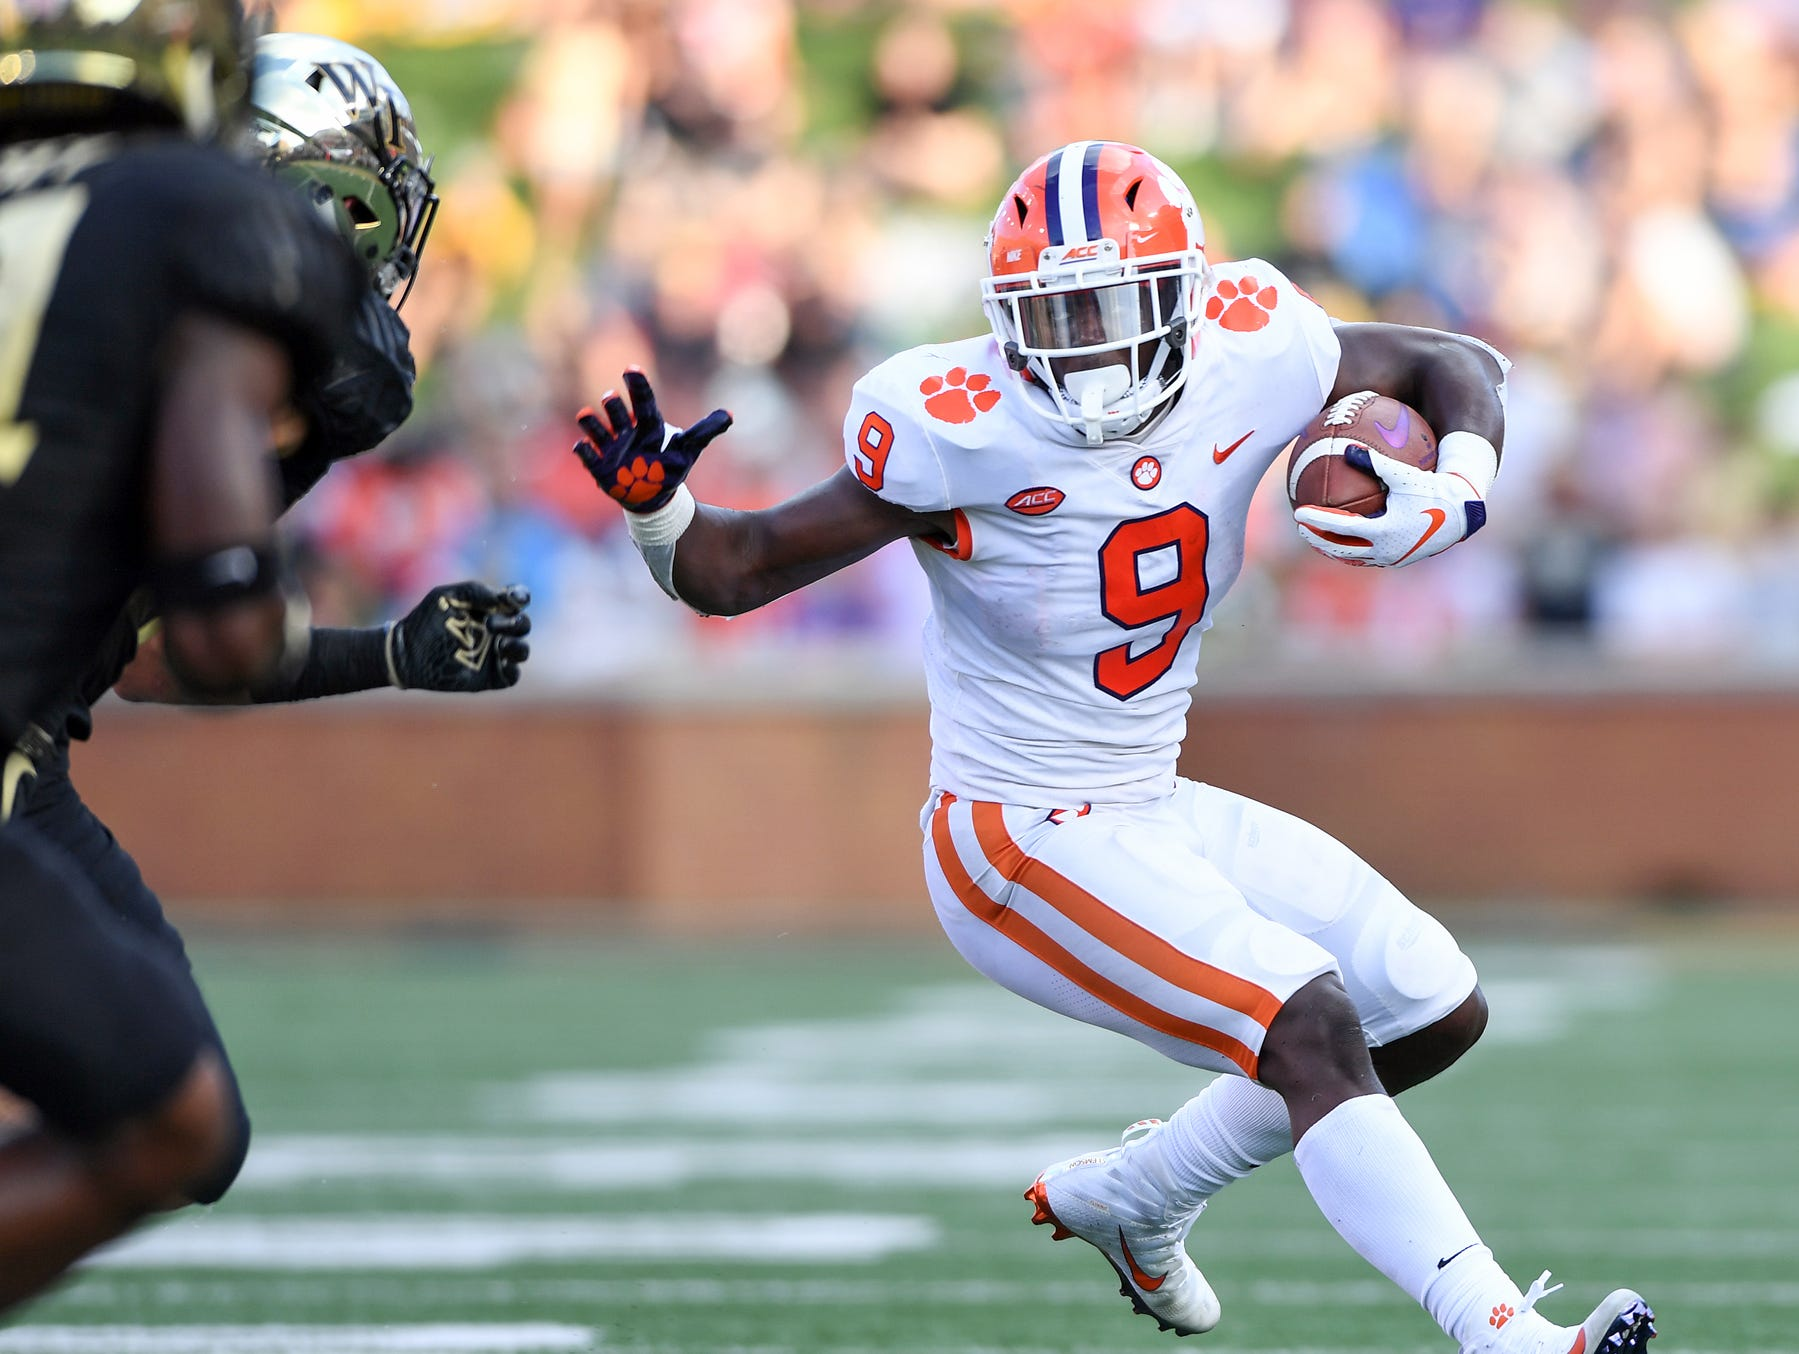 Clemson running back Travis Etienne (9) is moving into the Heisman Trophy picture with his play this season.